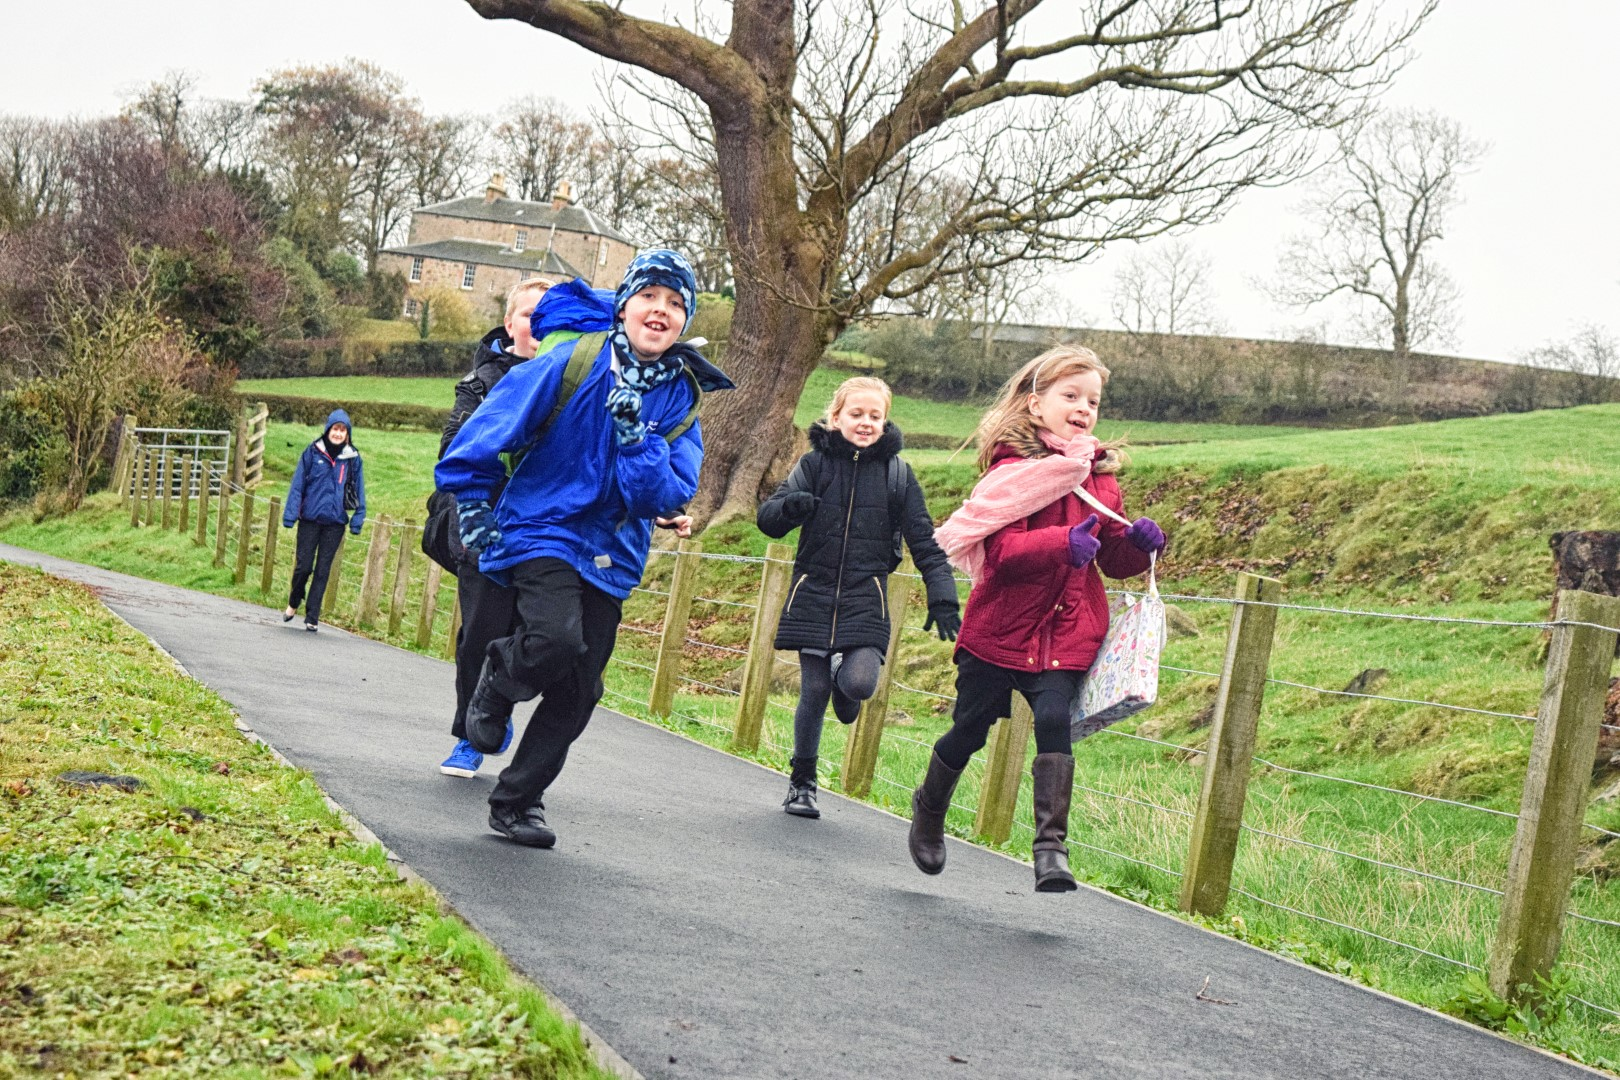 SUSTRANS: Opening up walkways and cycleways for families to enjoy